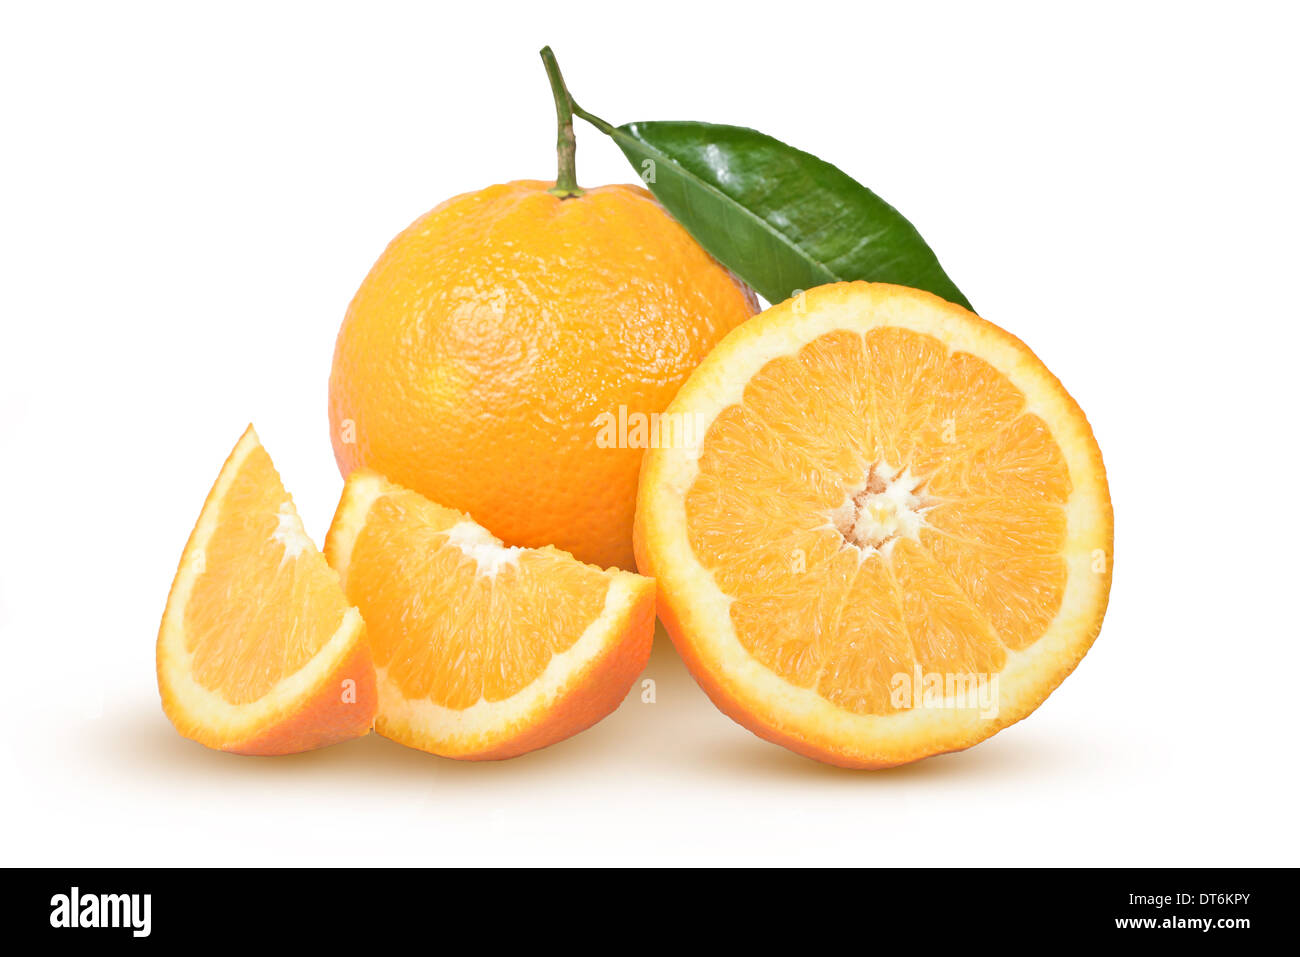 ripe oranges with a green leaf on a white background - Stock Image